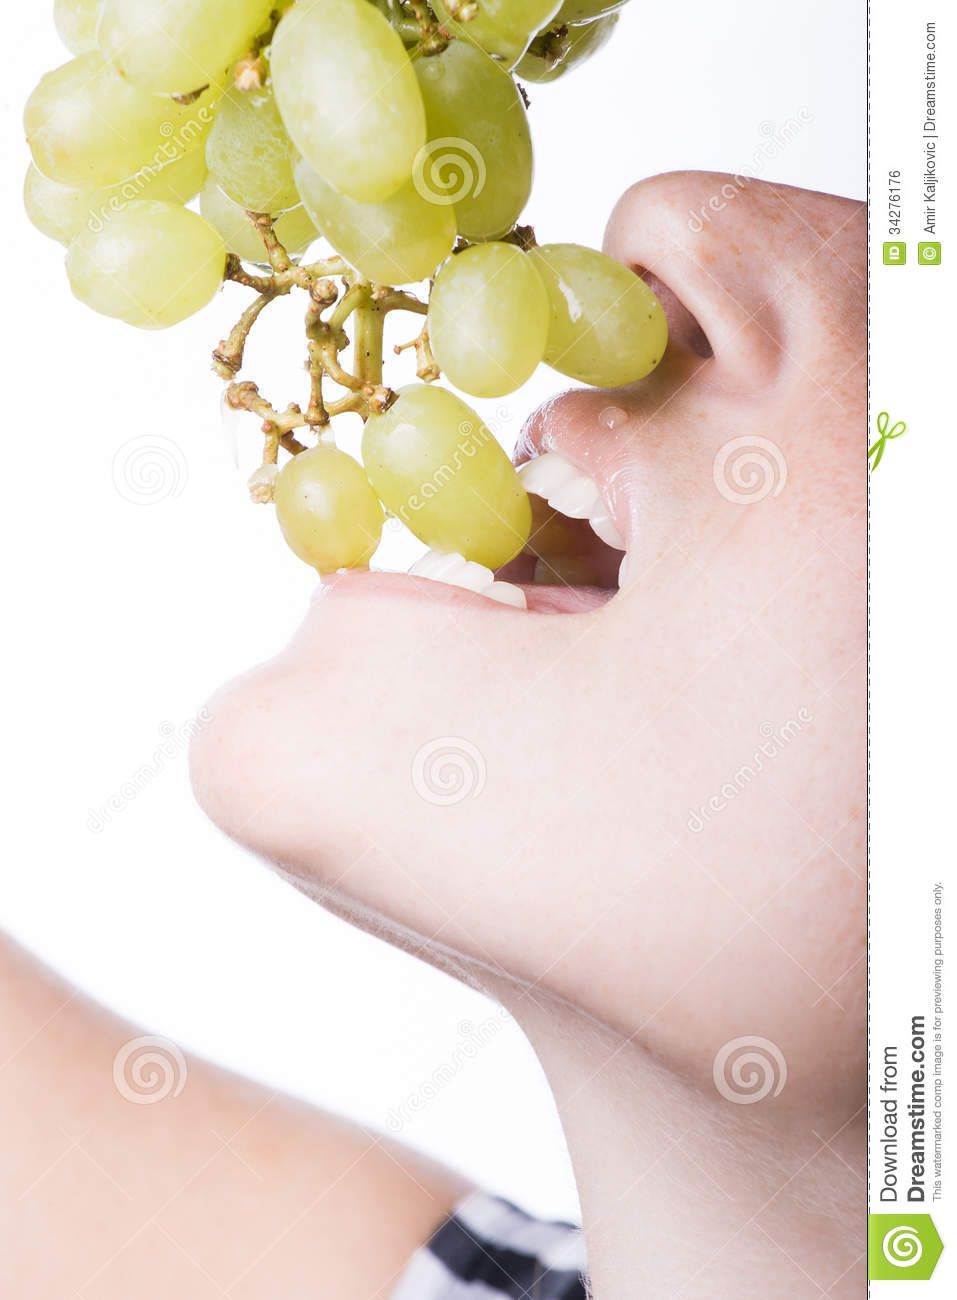 Woman Biting Green Grapes Stock Photo Image Of Open 34276176